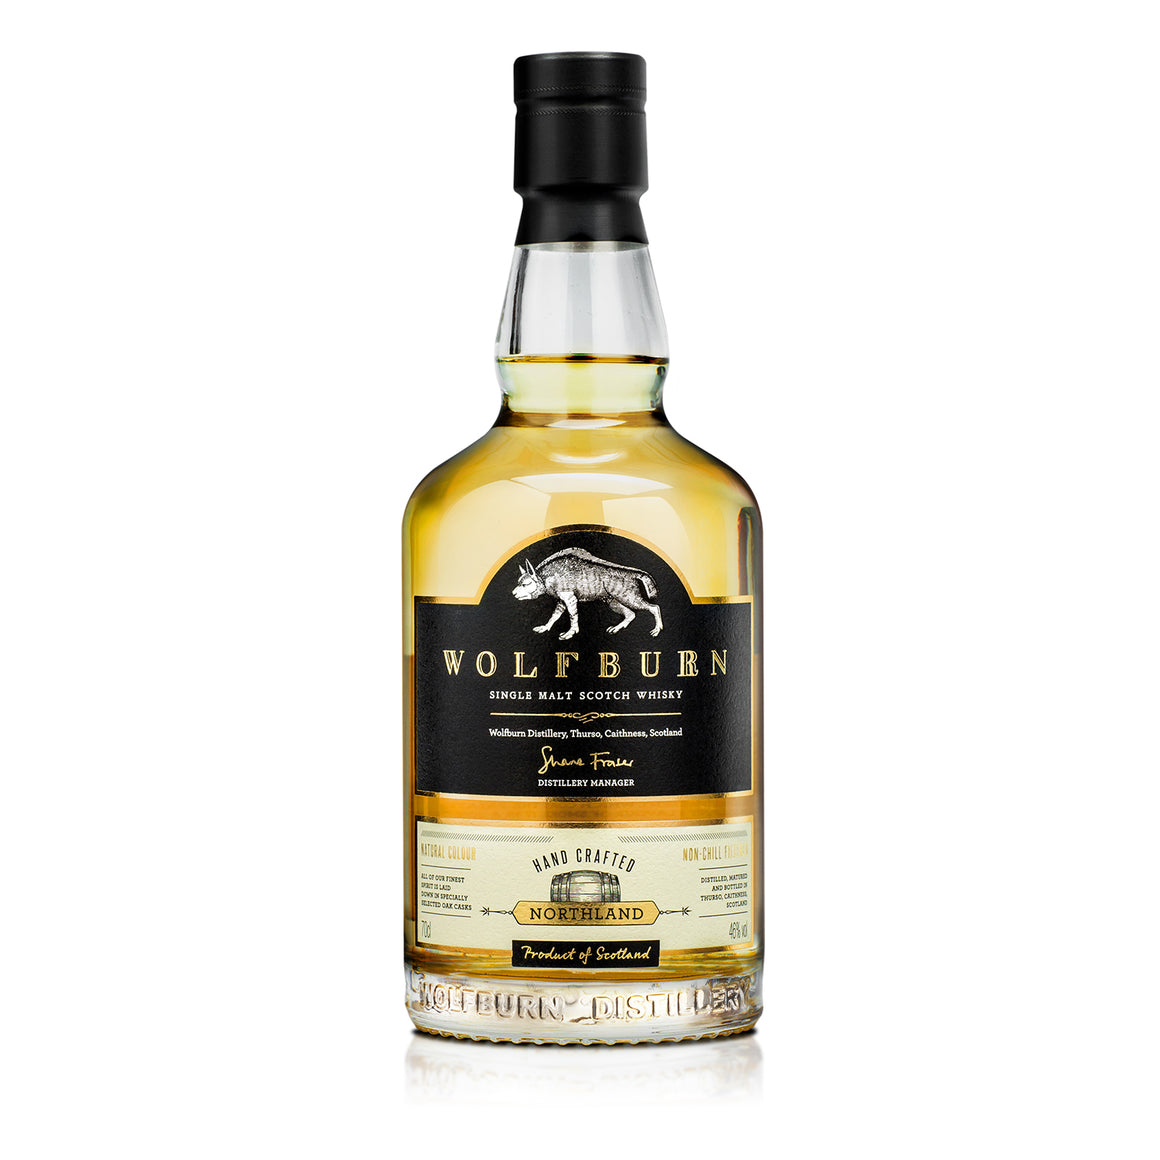 WOLFBURN NORTHLAND SINGLE MALT WHISKY 700ML